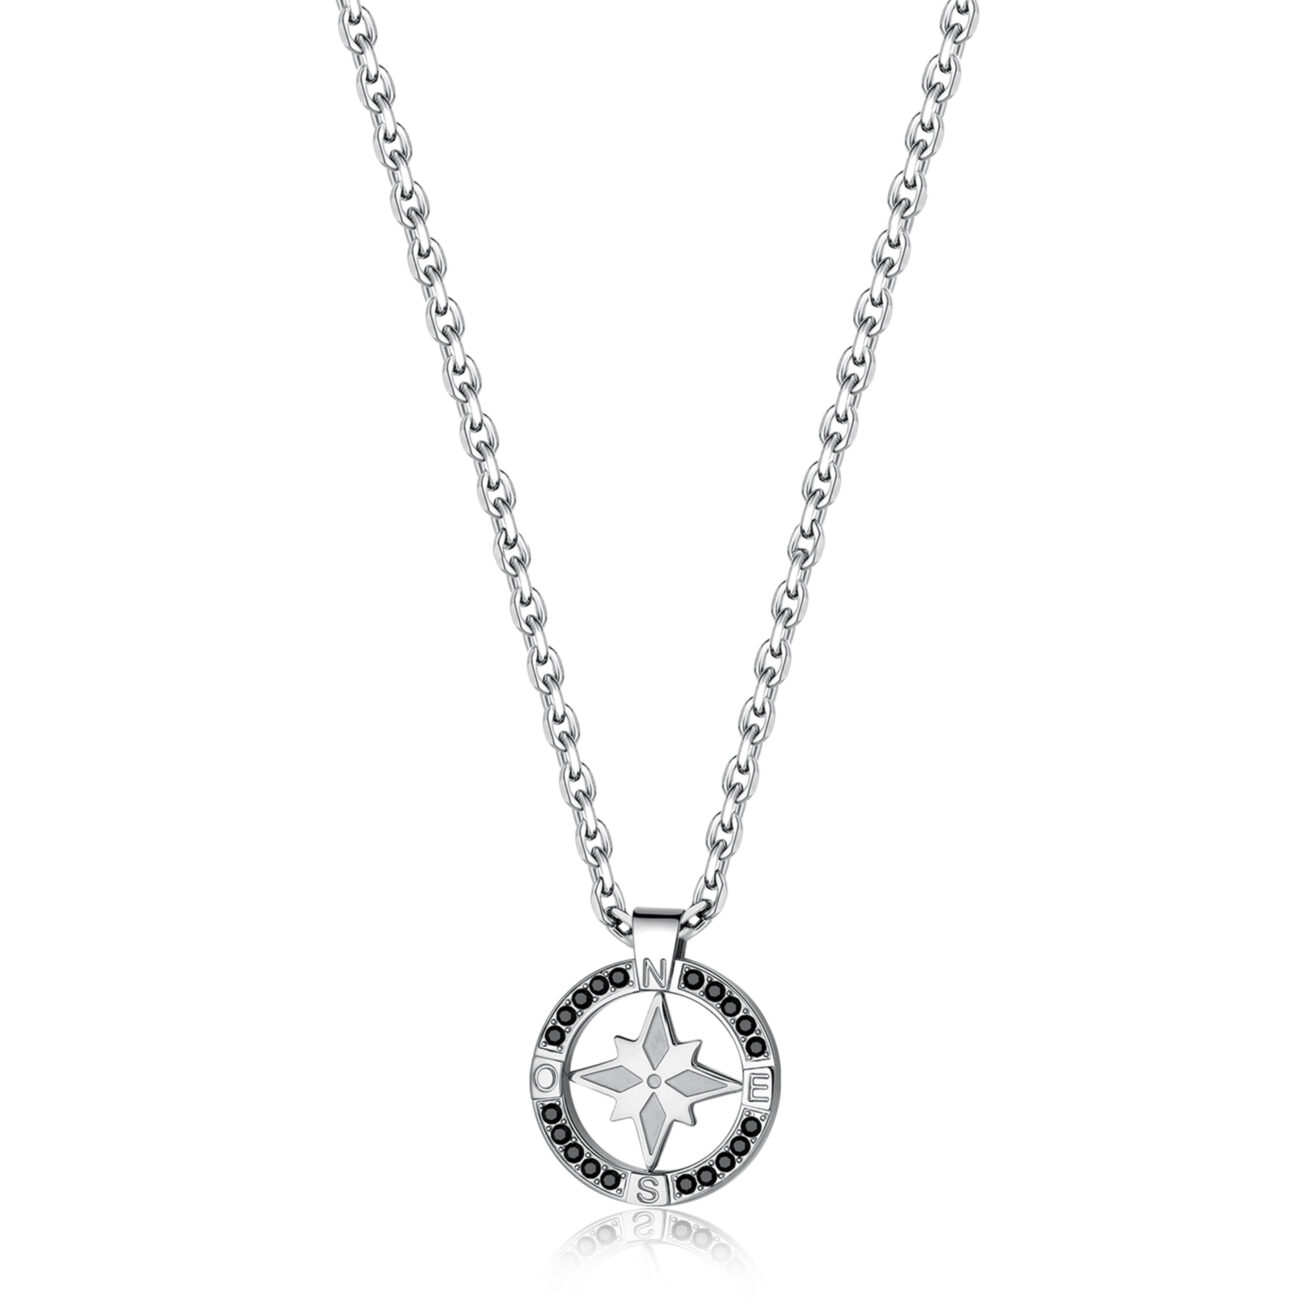 316L stainless steel necklace with small wind rose pendant and Swarovski® Elements crystals.